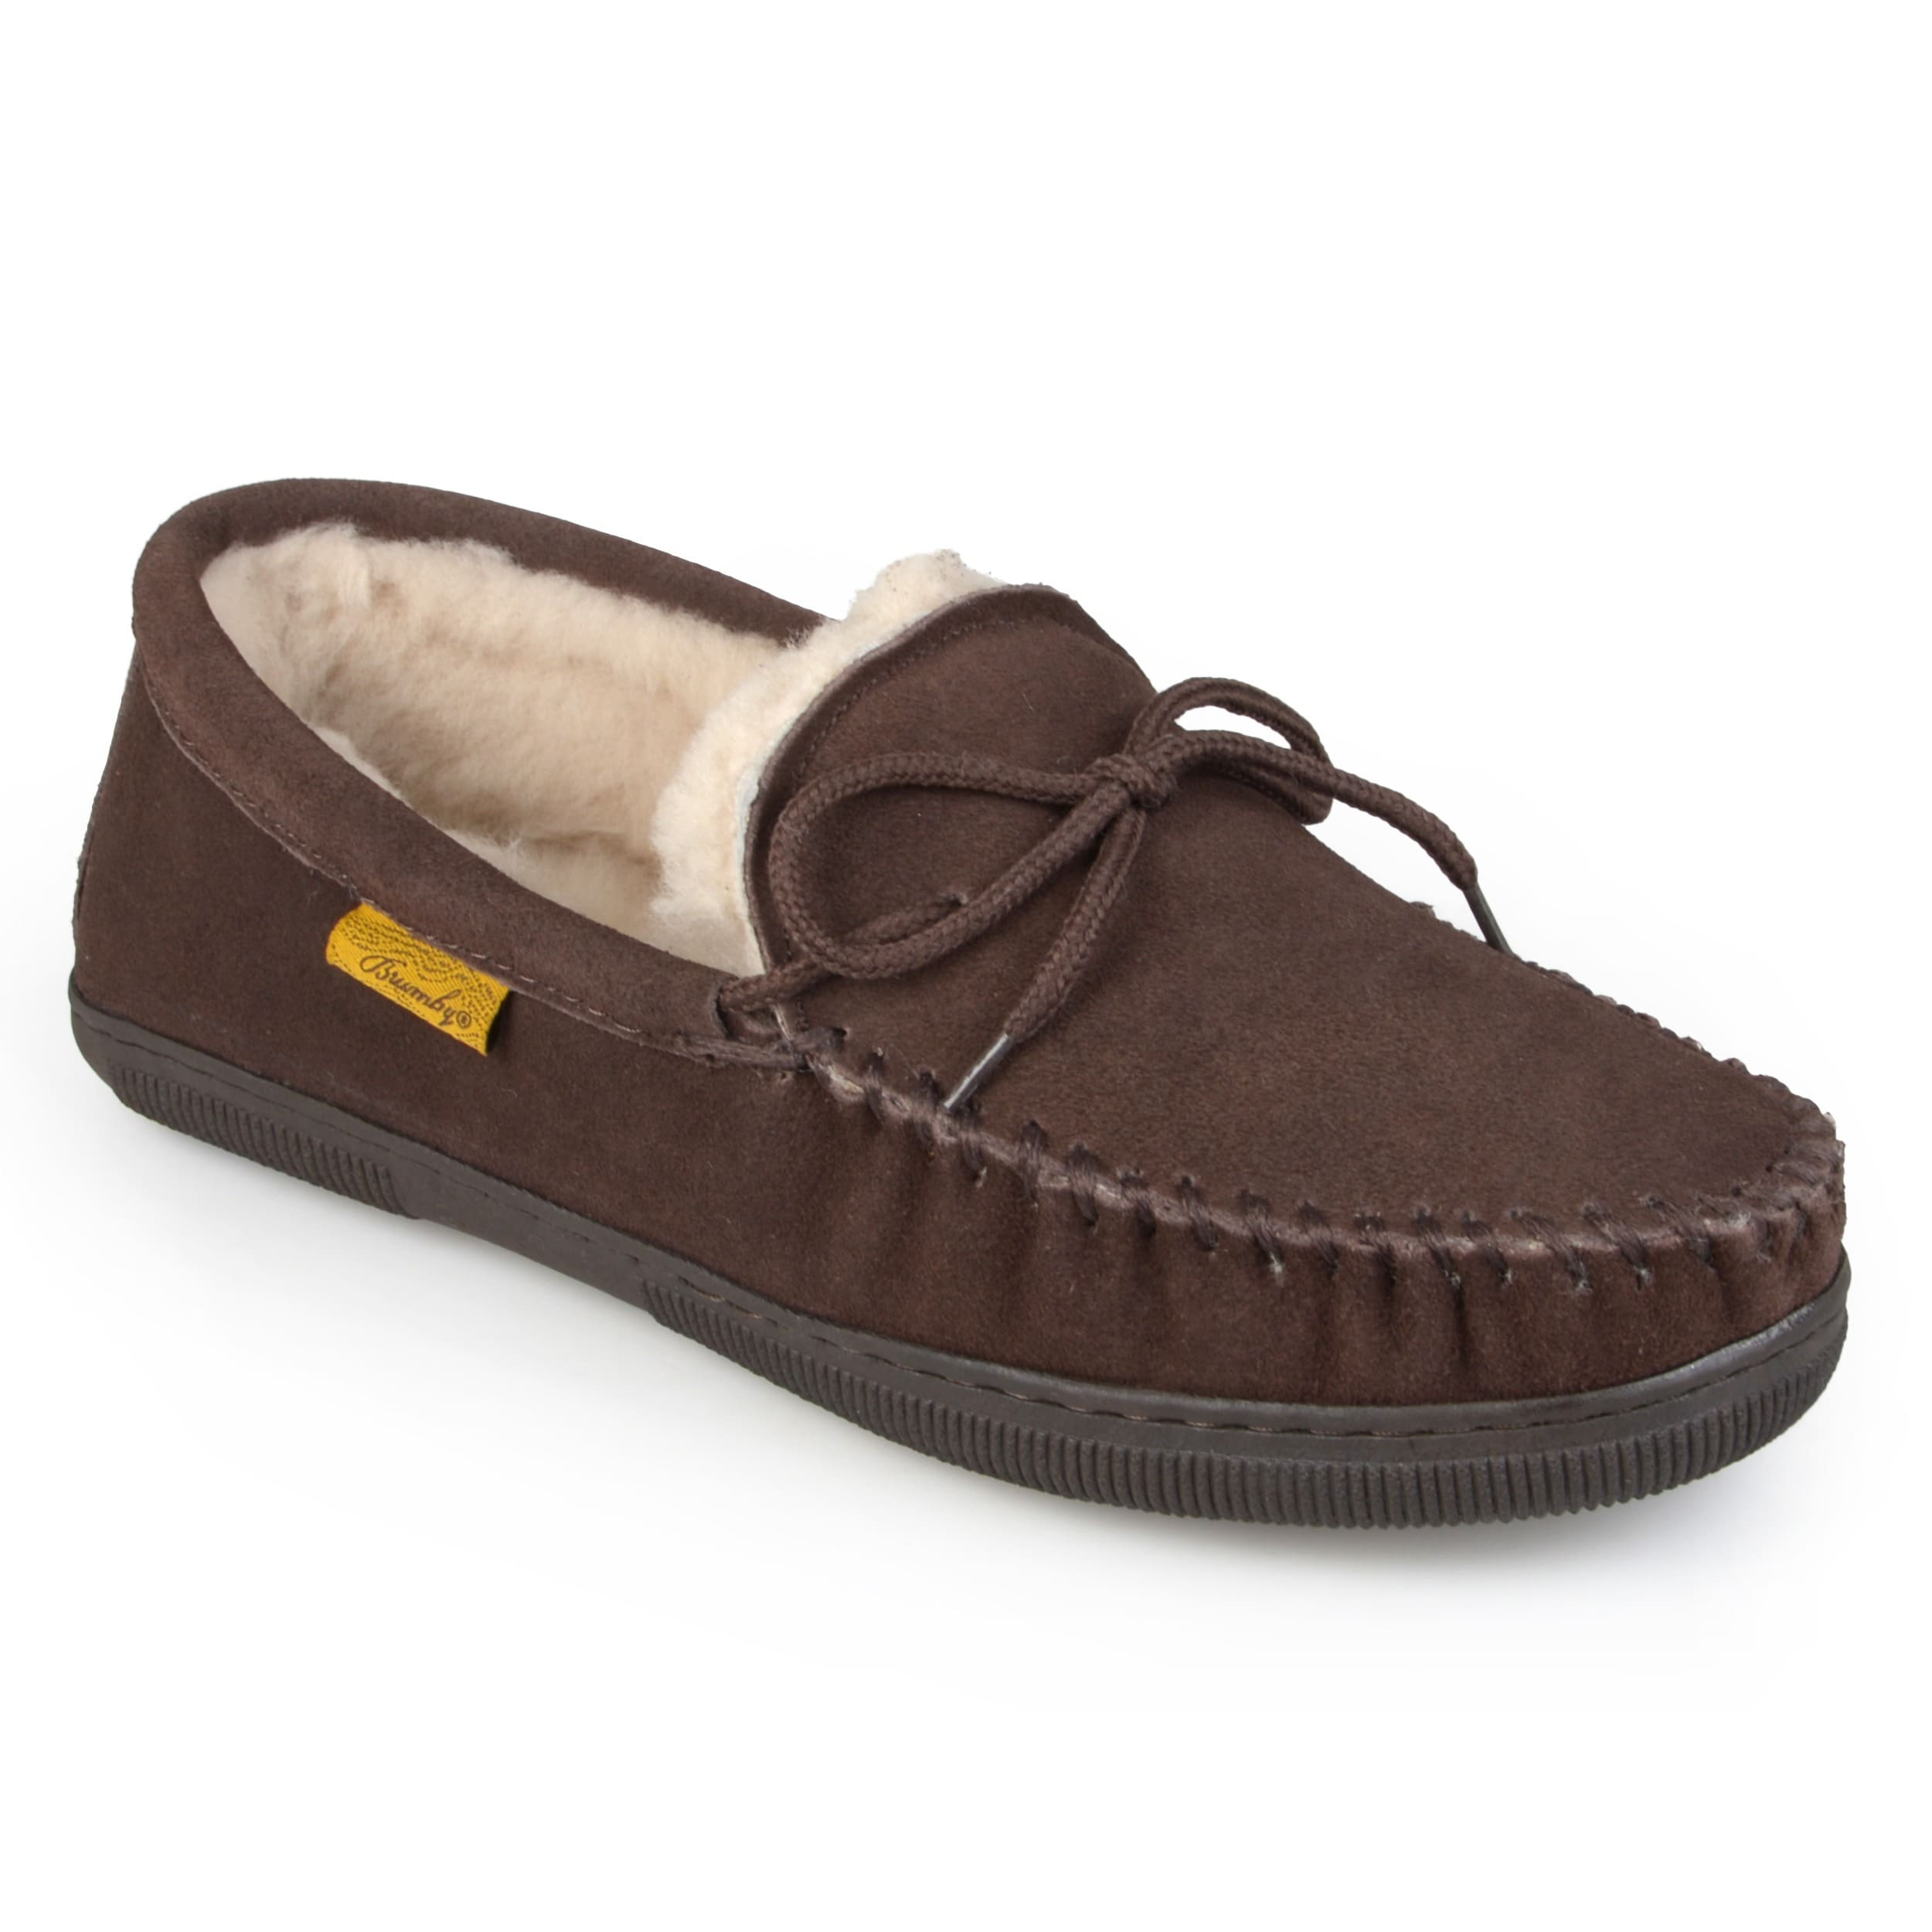 c0b04c29290e Shop Men s Moccasin Sheepskin Slippers - Free Shipping Today ...